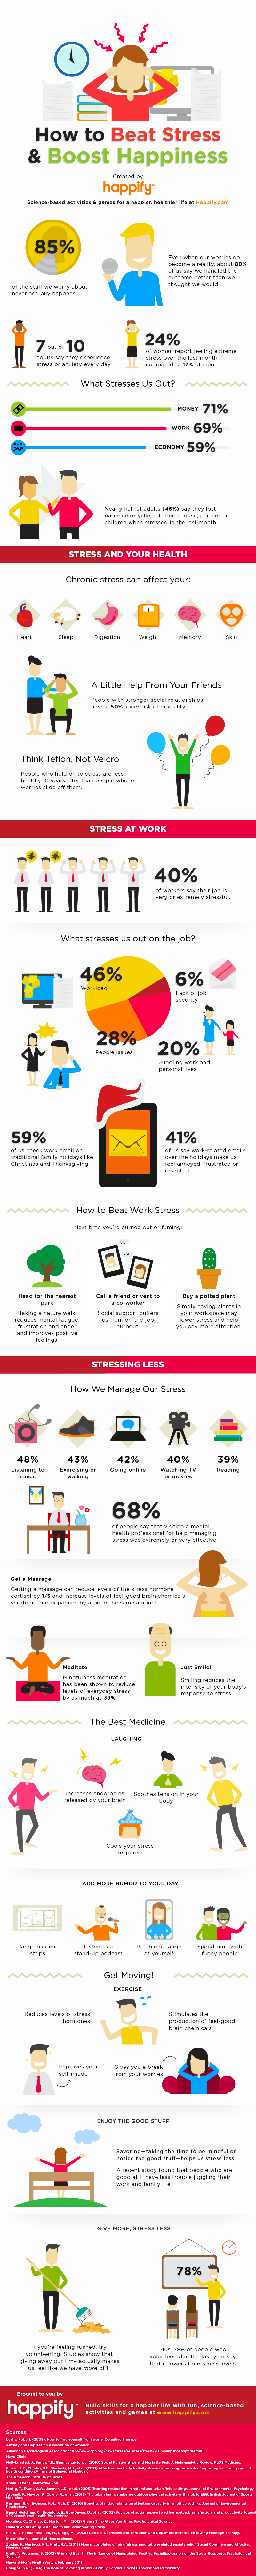 How to Beat Stress and Boost Happiness (Infographic)